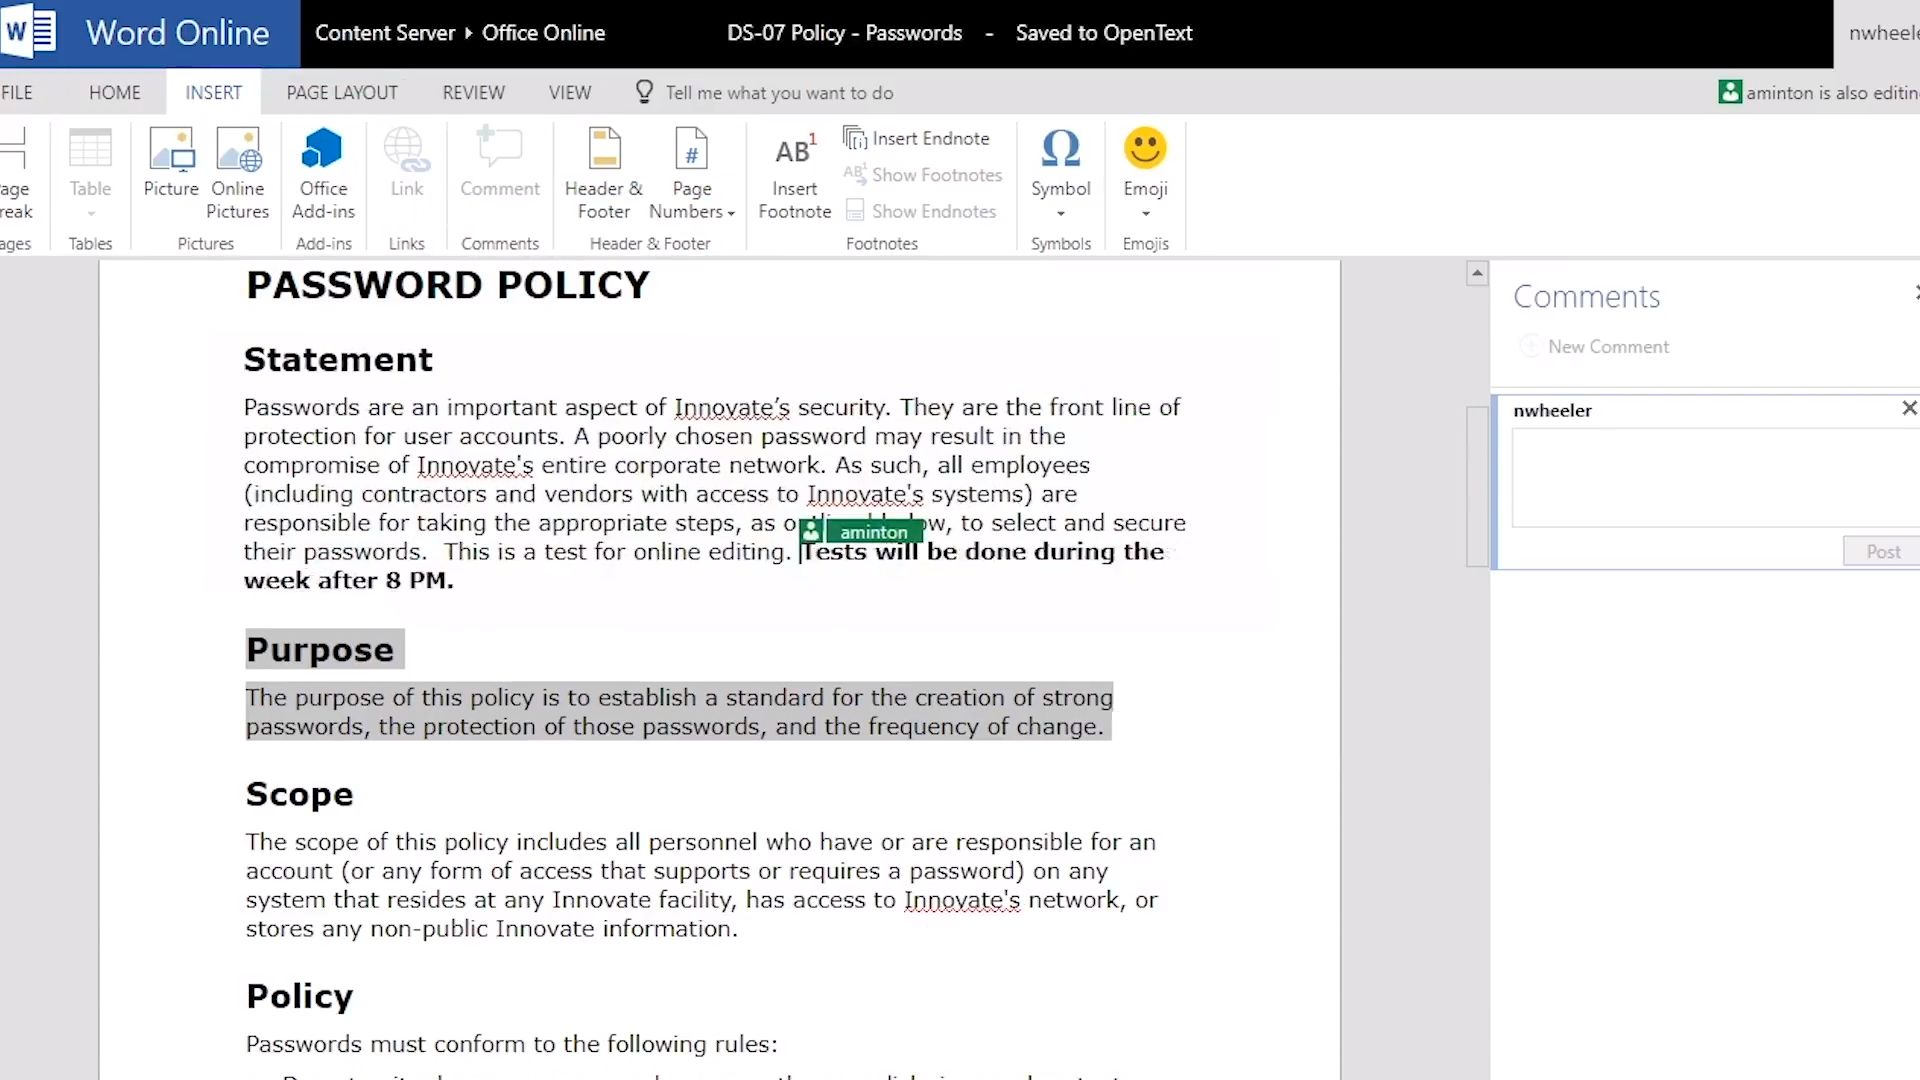 Microsoft office word online editing with opentext content suite; Microsoft word online collaboration with OpenText